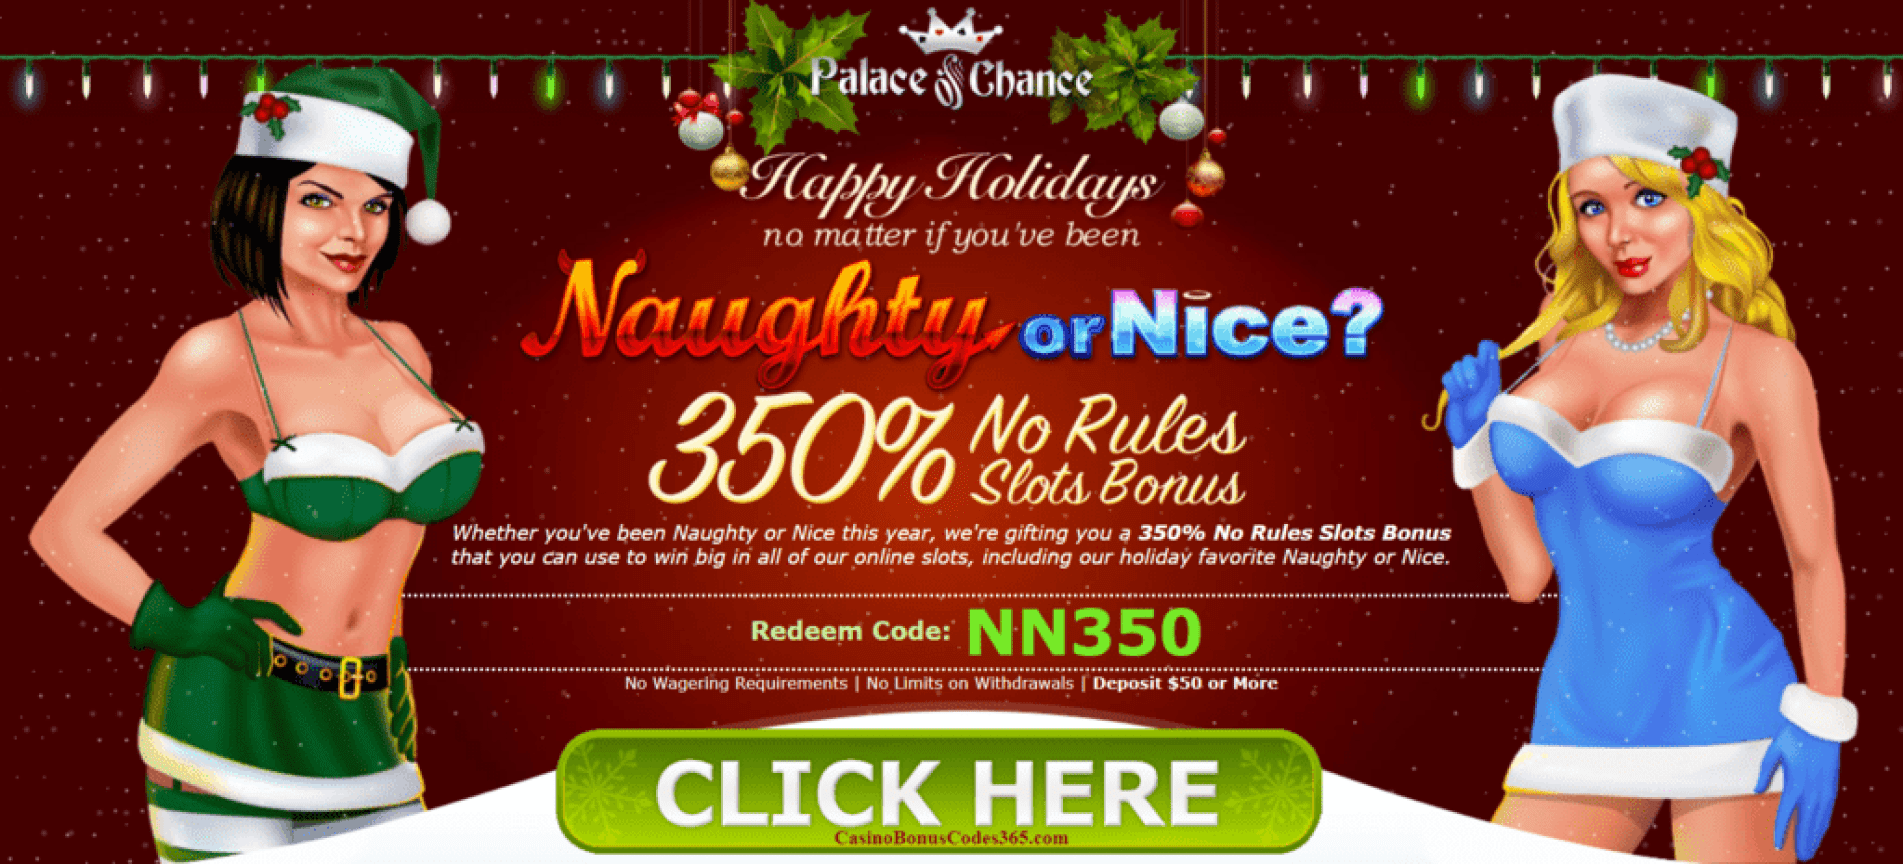 Palace of Chance Online Casino RTG Naughty or Nice Happy Holidays 350% No Playthrough No Max Bonus